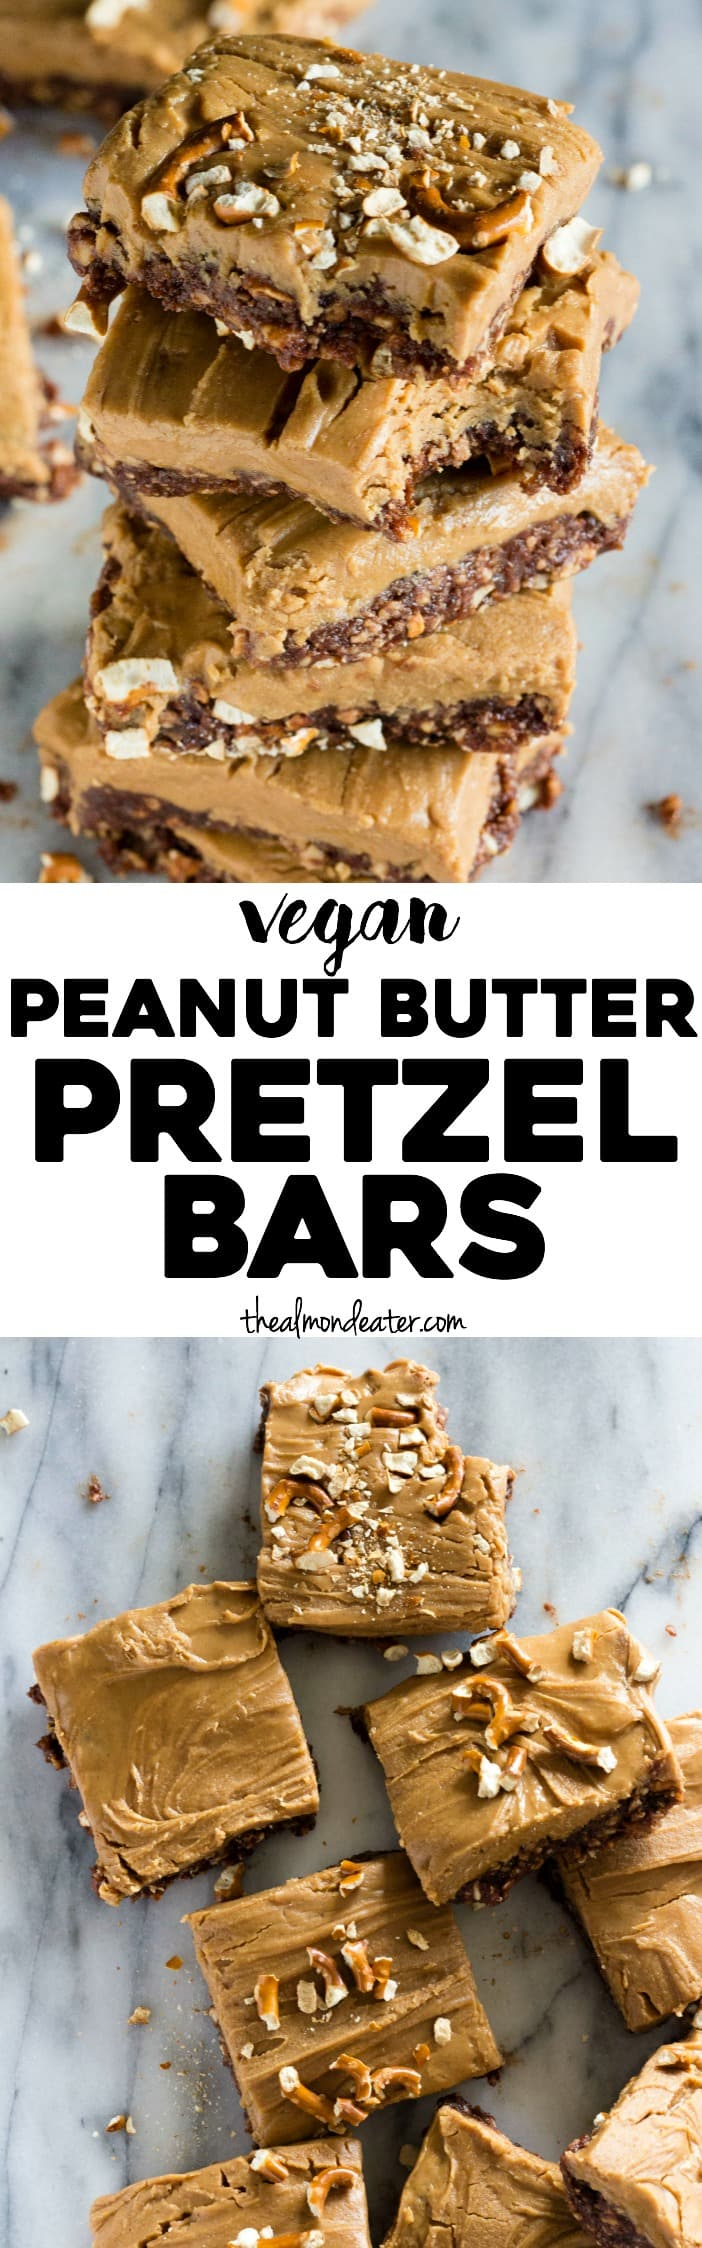 Vegan Peanut Butter Pretzel Bars | Just 6 ingredients and SO easy to make